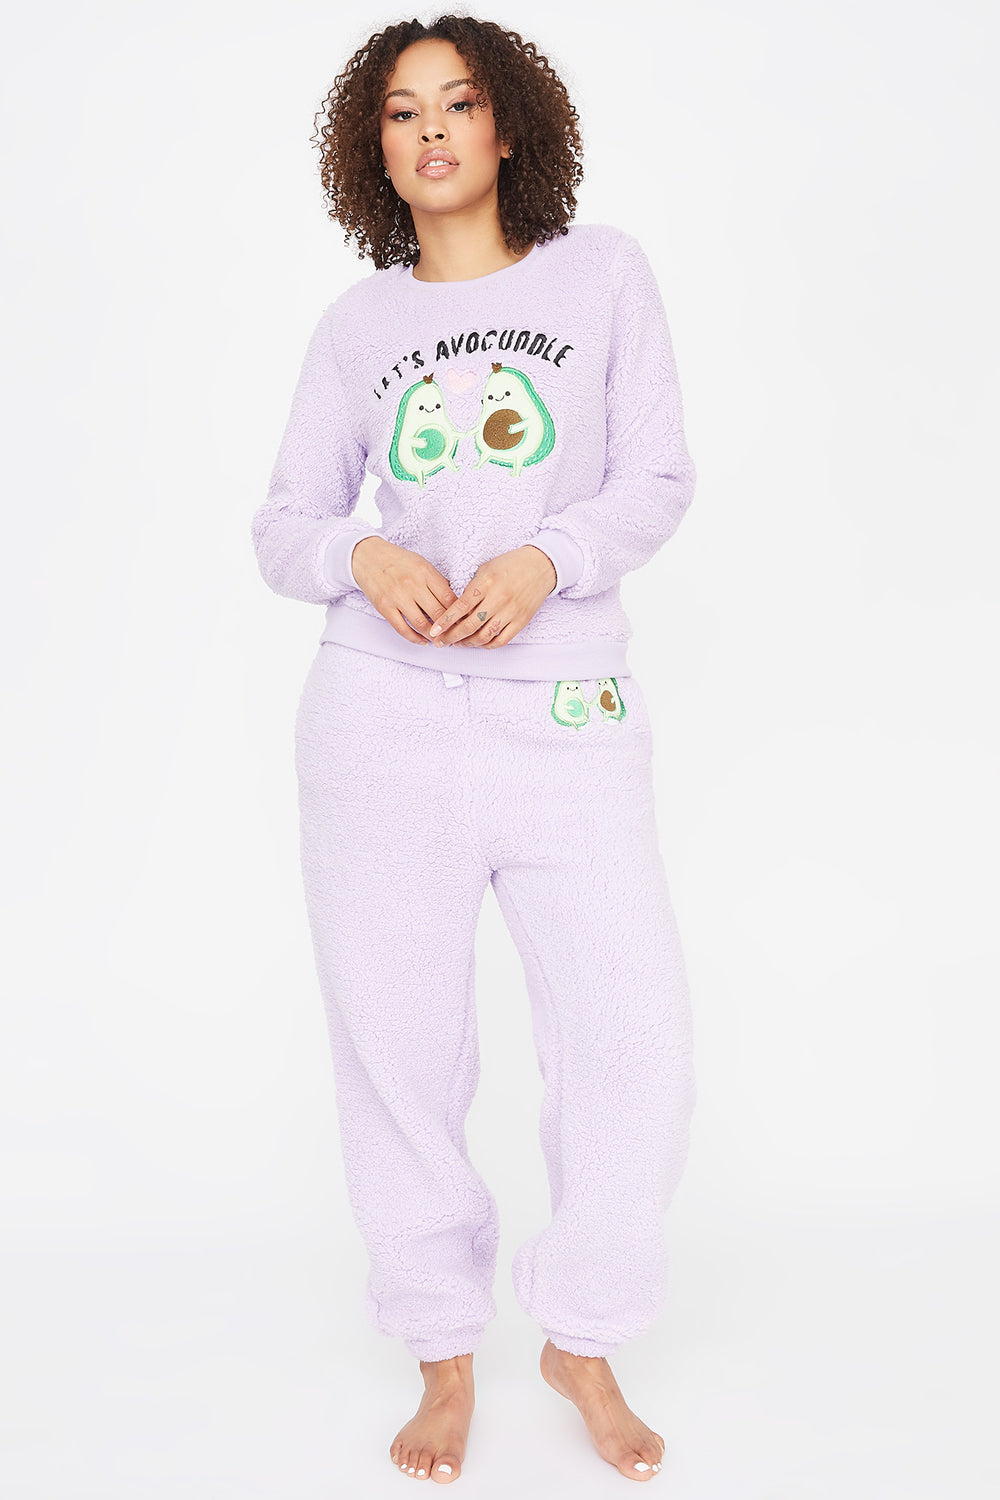 Sherpa Graphic Avocuddle Pajama Sweatshirt Lilac